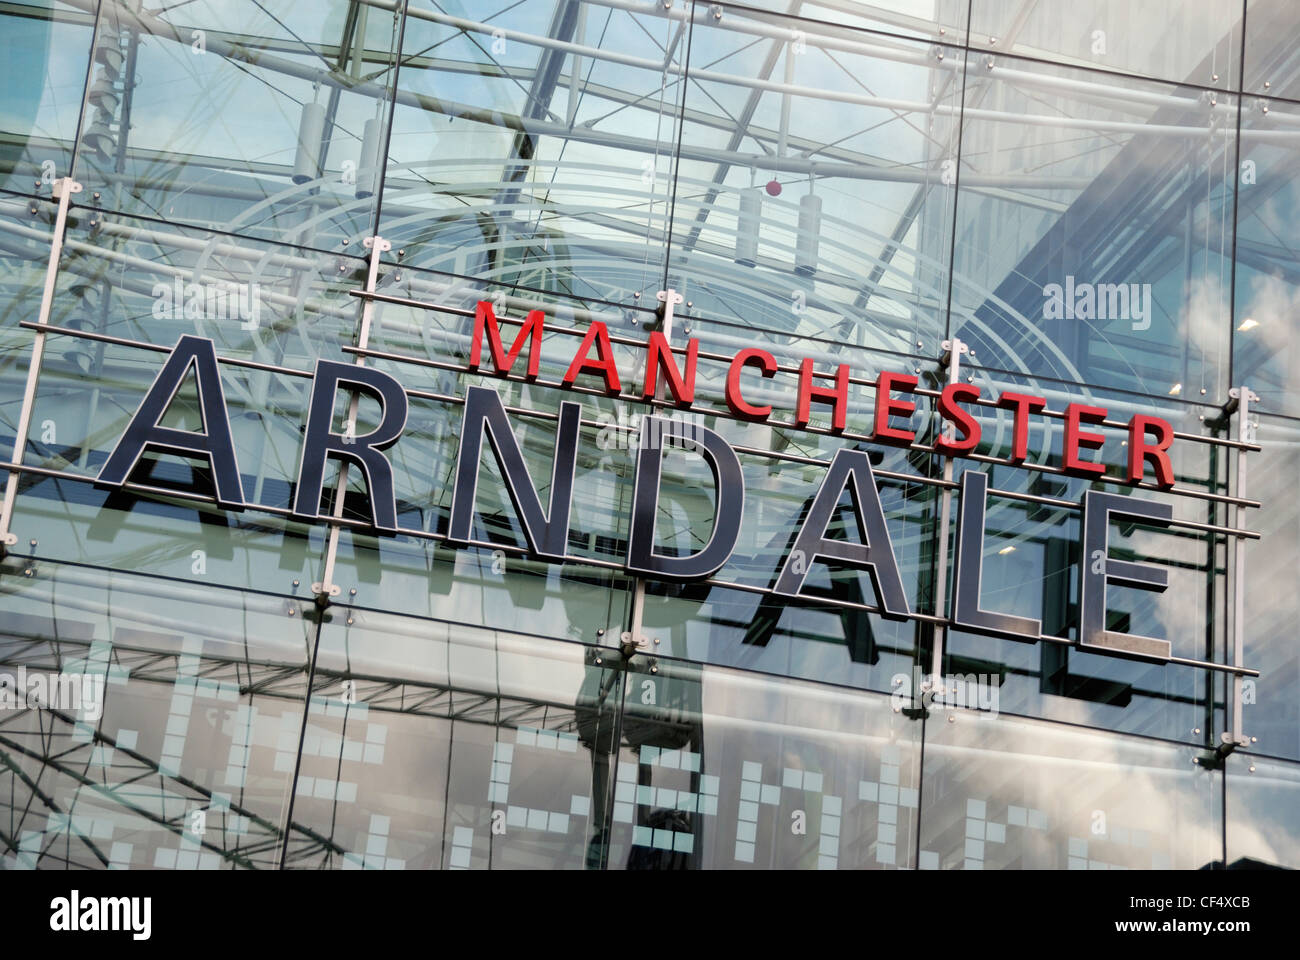 Manchester Arndale, the UK's largest inner-city shopping centre, located in the heart of Manchester City Centre. - Stock Image